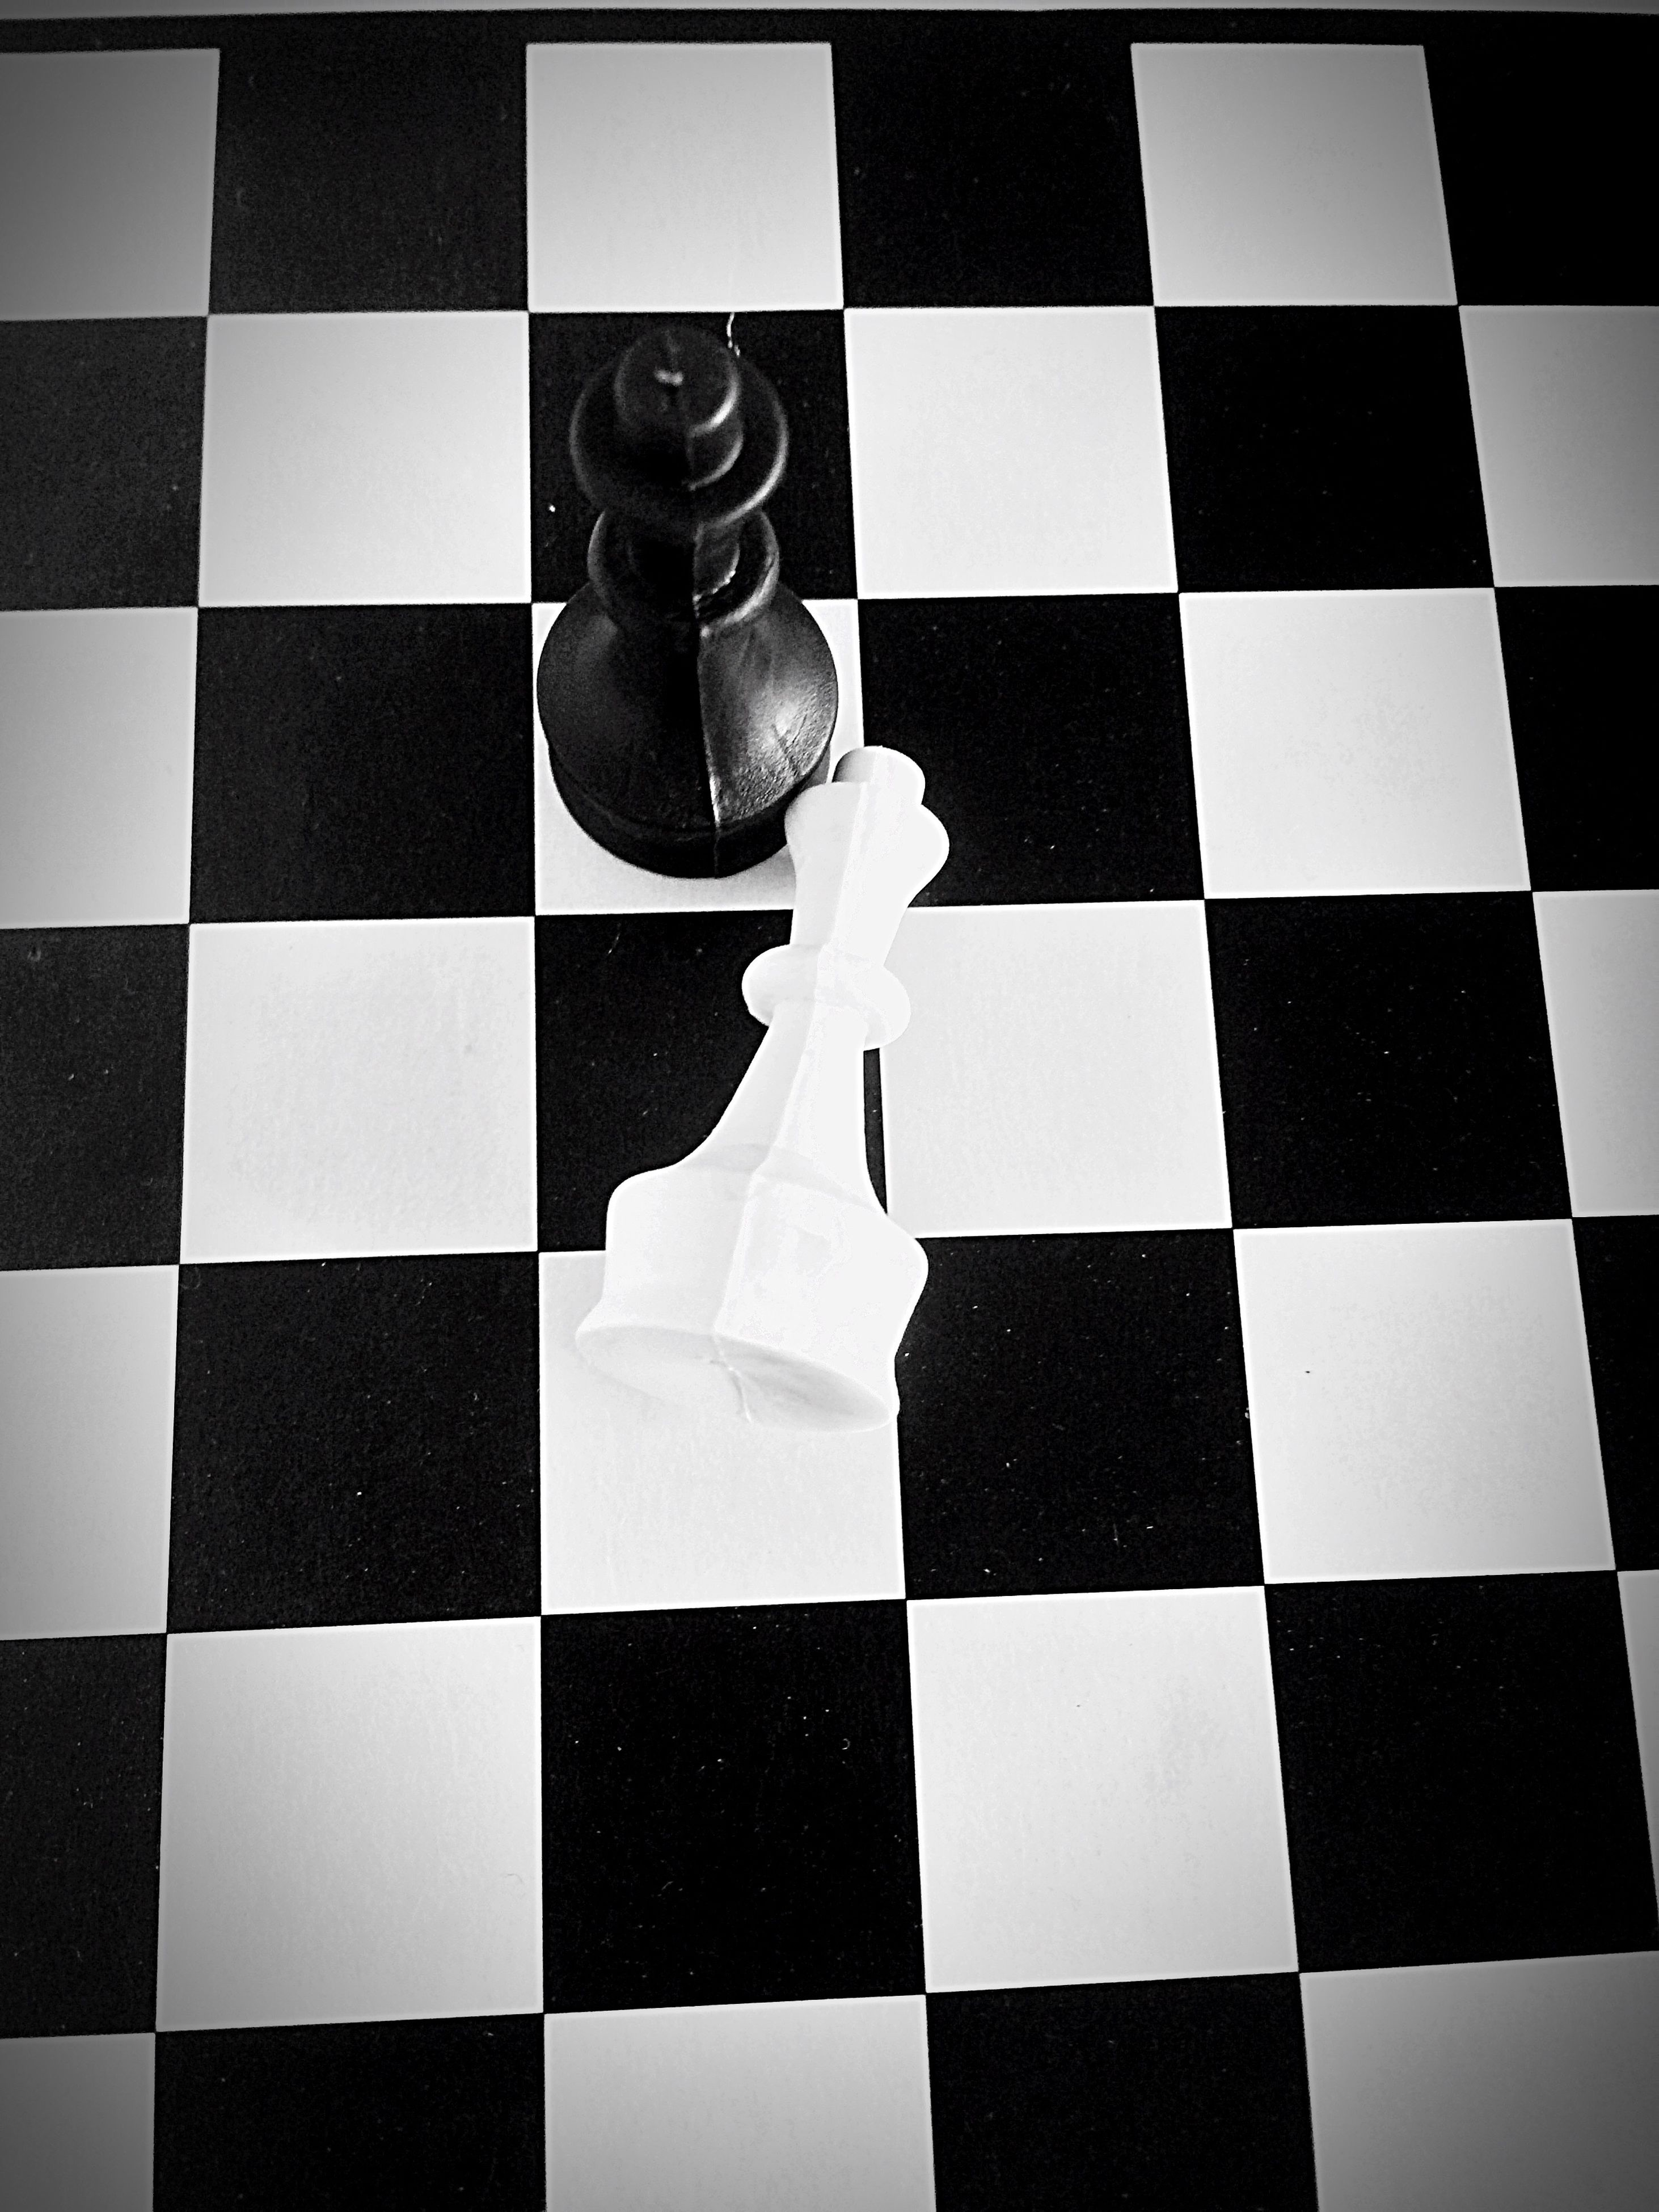 chess, checked pattern, chess board, chess piece, checked, leisure games, strategy, indoors, competition, close-up, no people, knight - chess piece, queen - chess piece